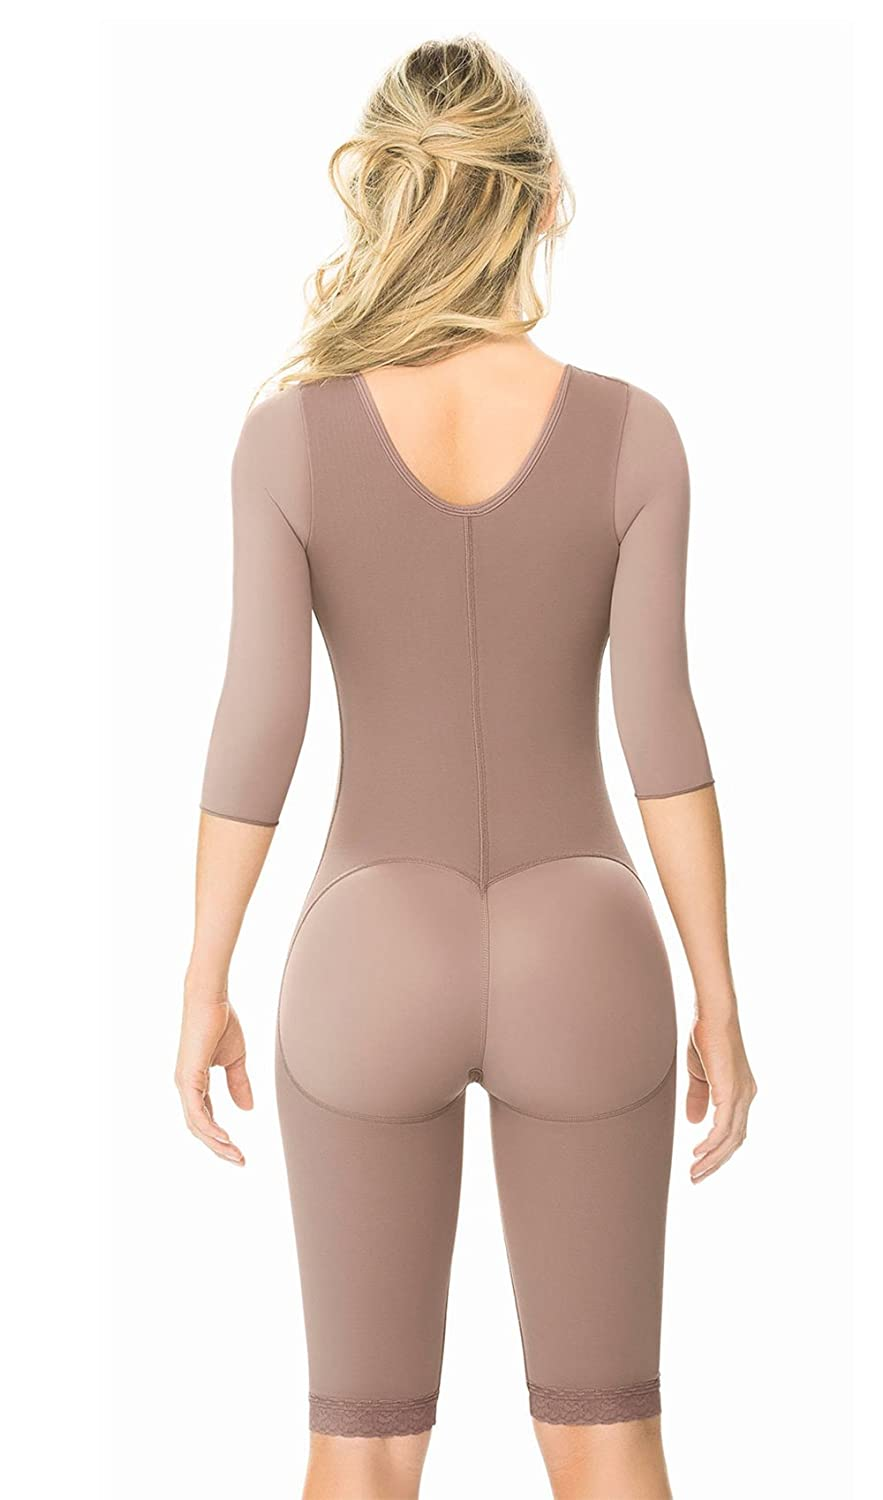 cc0f89fea3 Ann Chery Comfort Line High Compression Post Surgical Daily Use Body  Shaper Liposuction   Faja Colombiana at Amazon Women s Clothing store